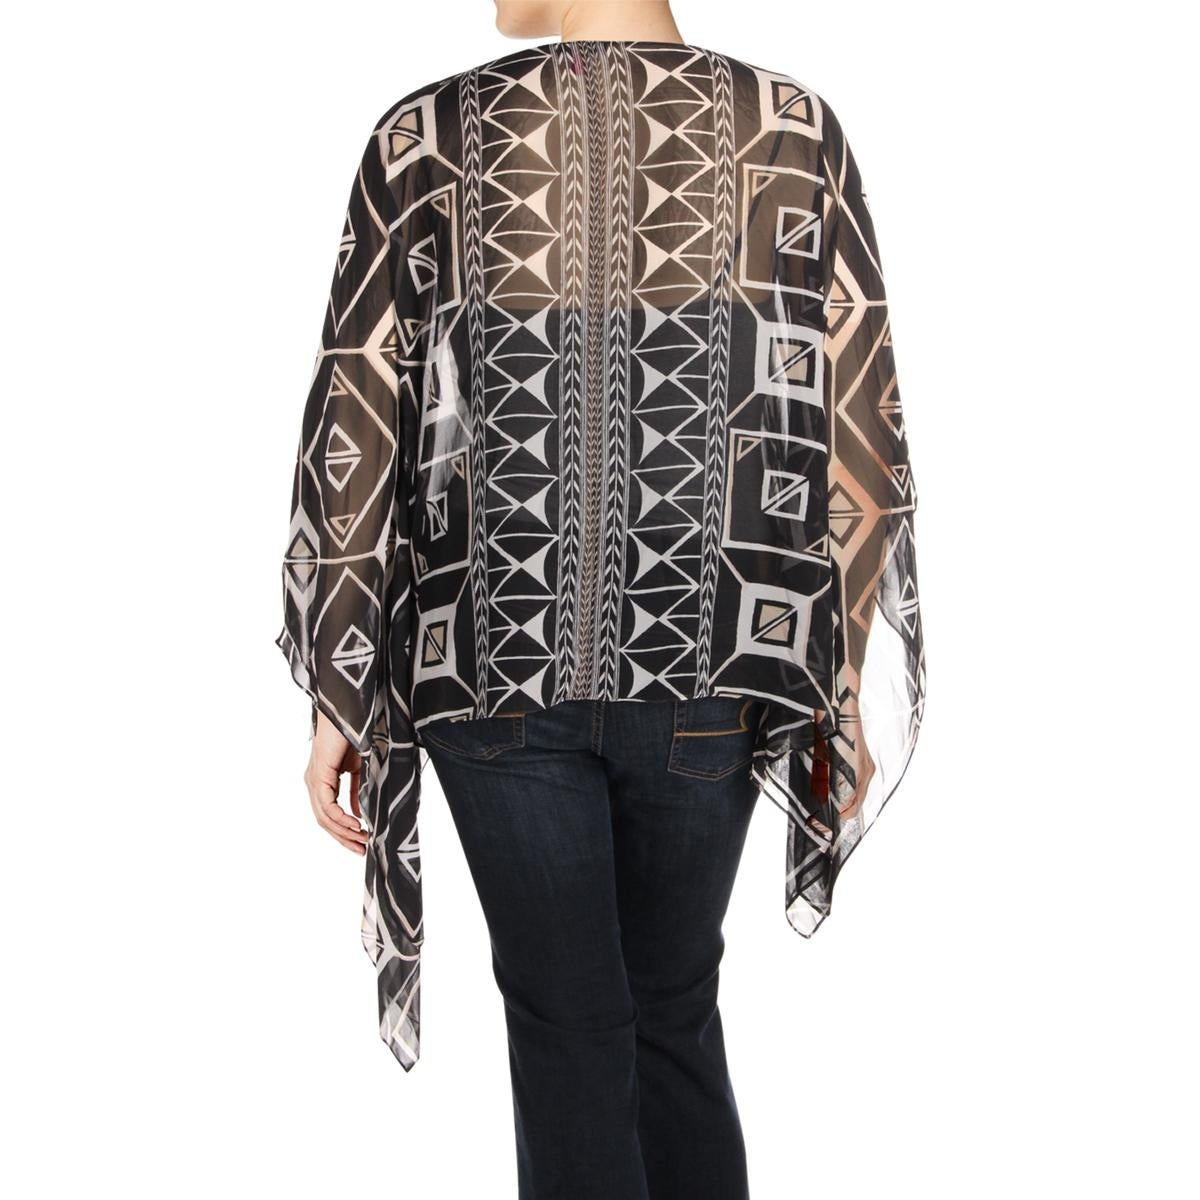 8fb99063 Shop Vince Camuto Womens Poncho Top Nairobi Graphic Flowy - Free Shipping  On Orders Over $45 - Overstock - 20765173